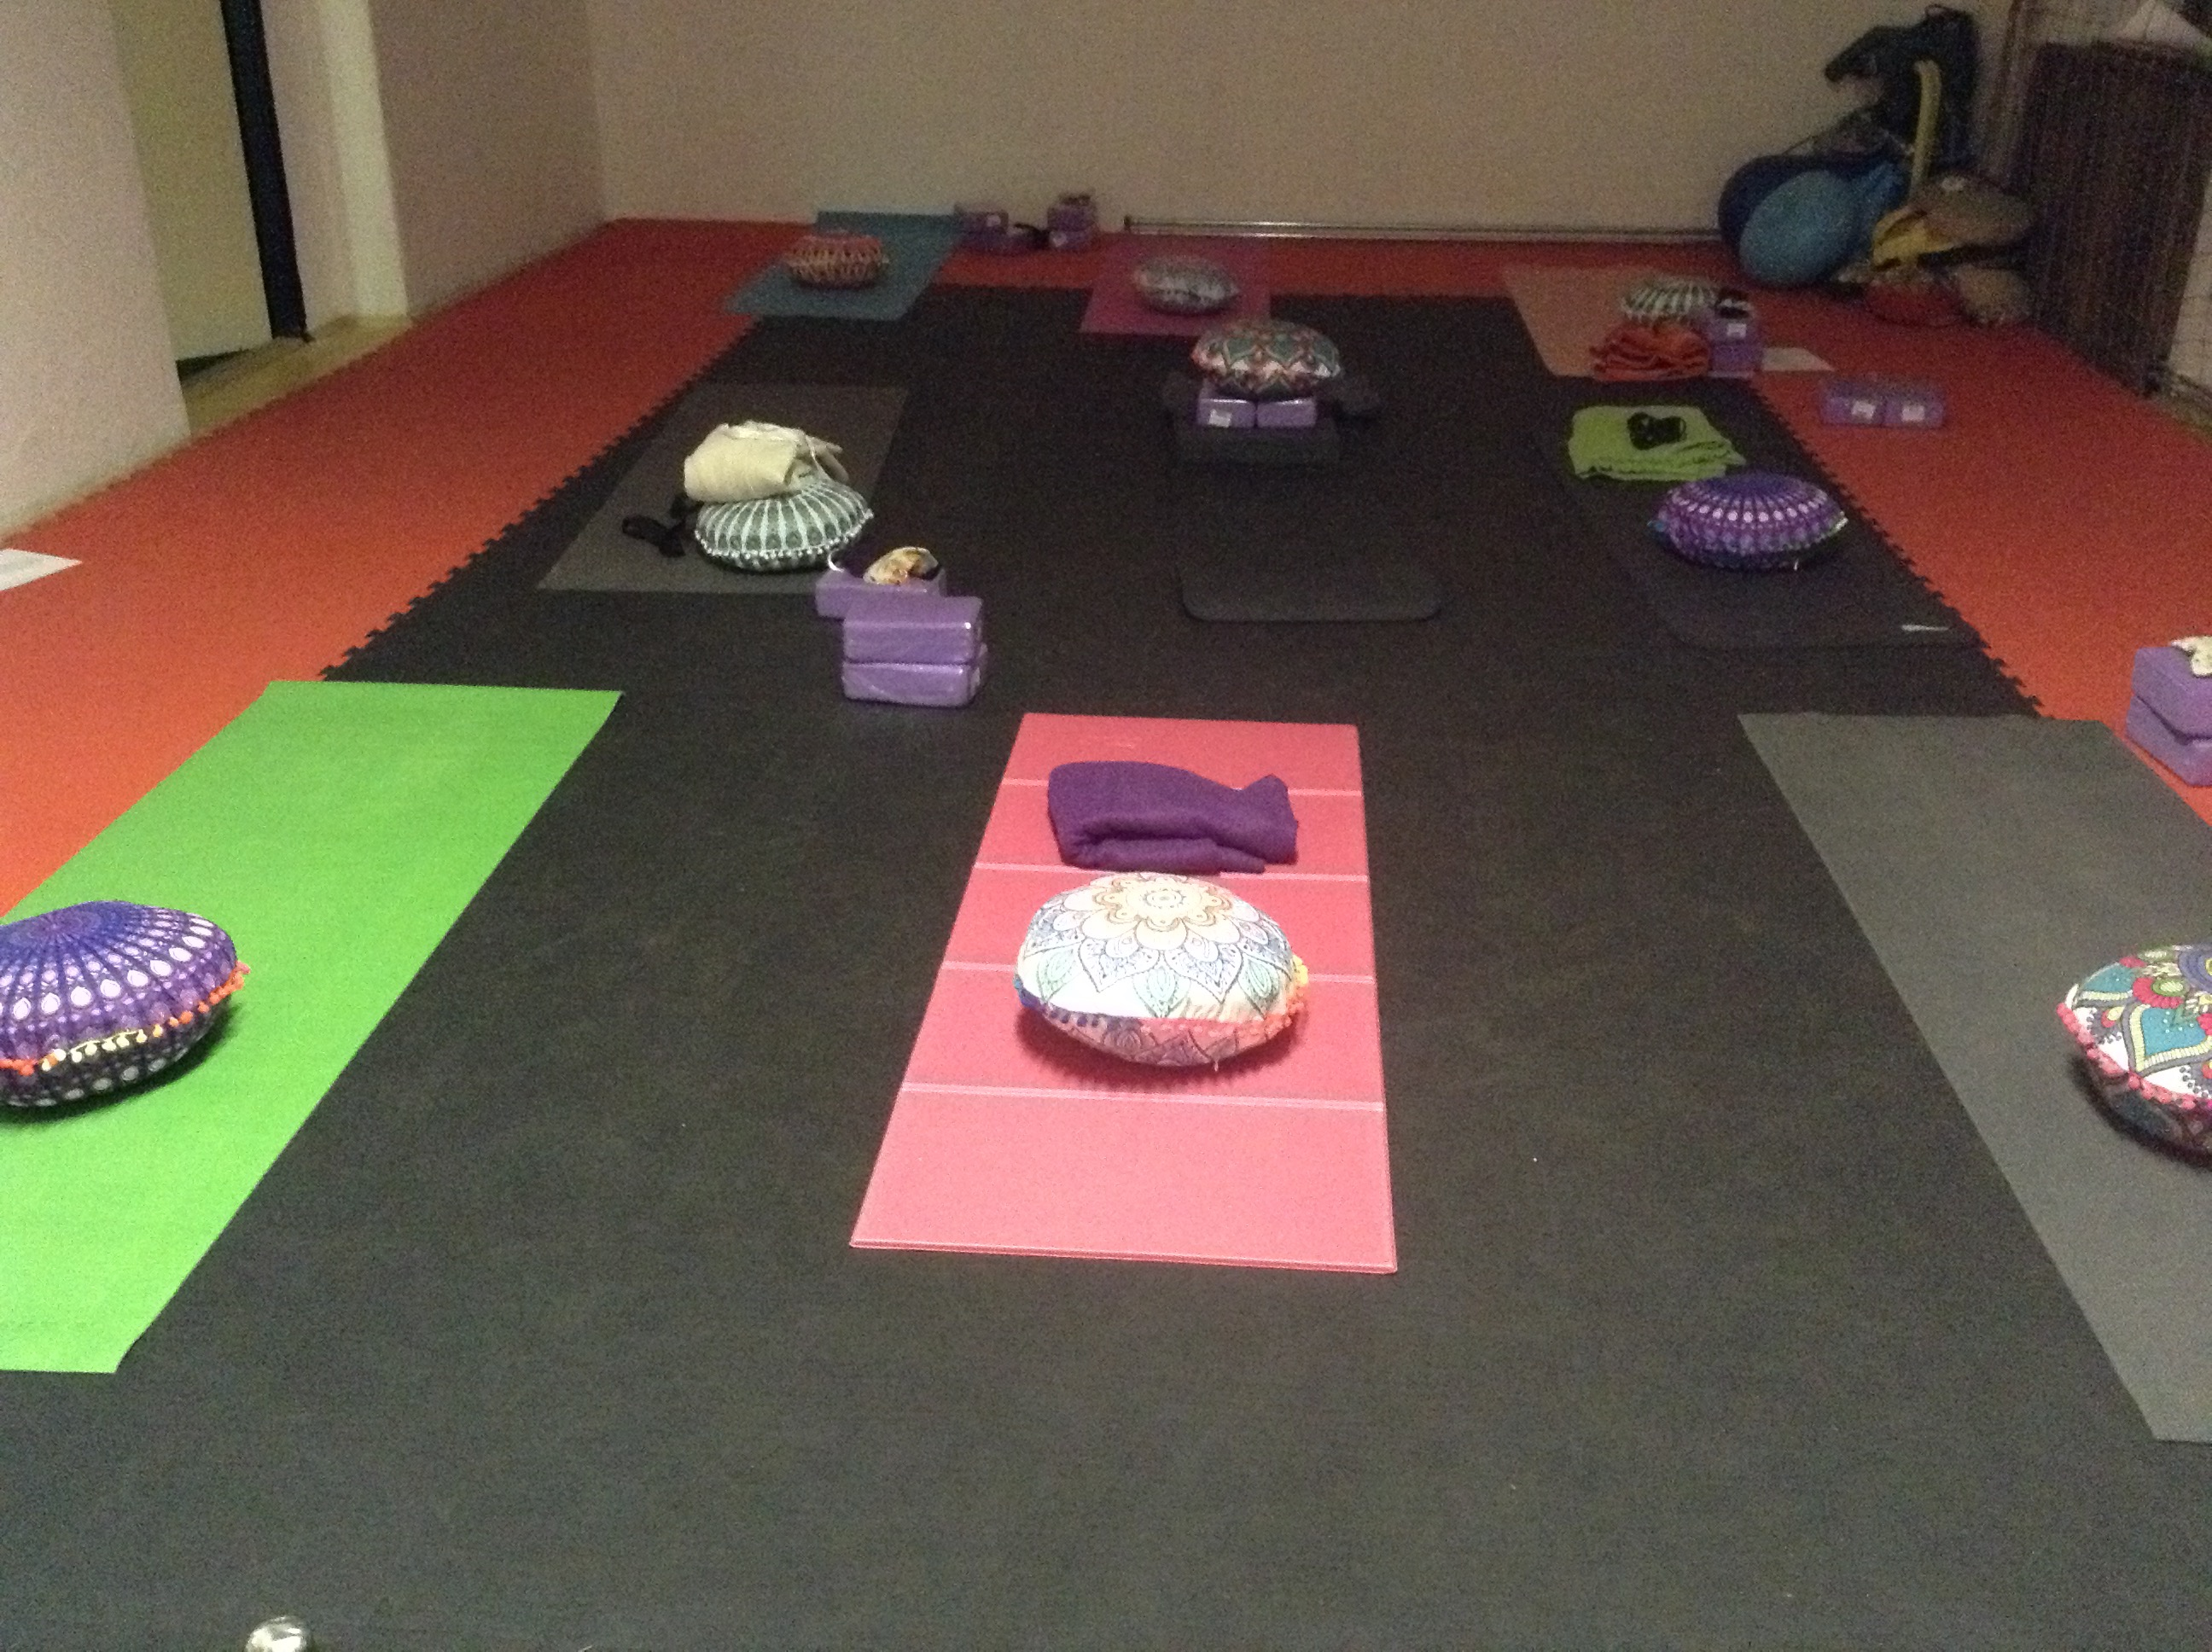 Our weekend yoga room